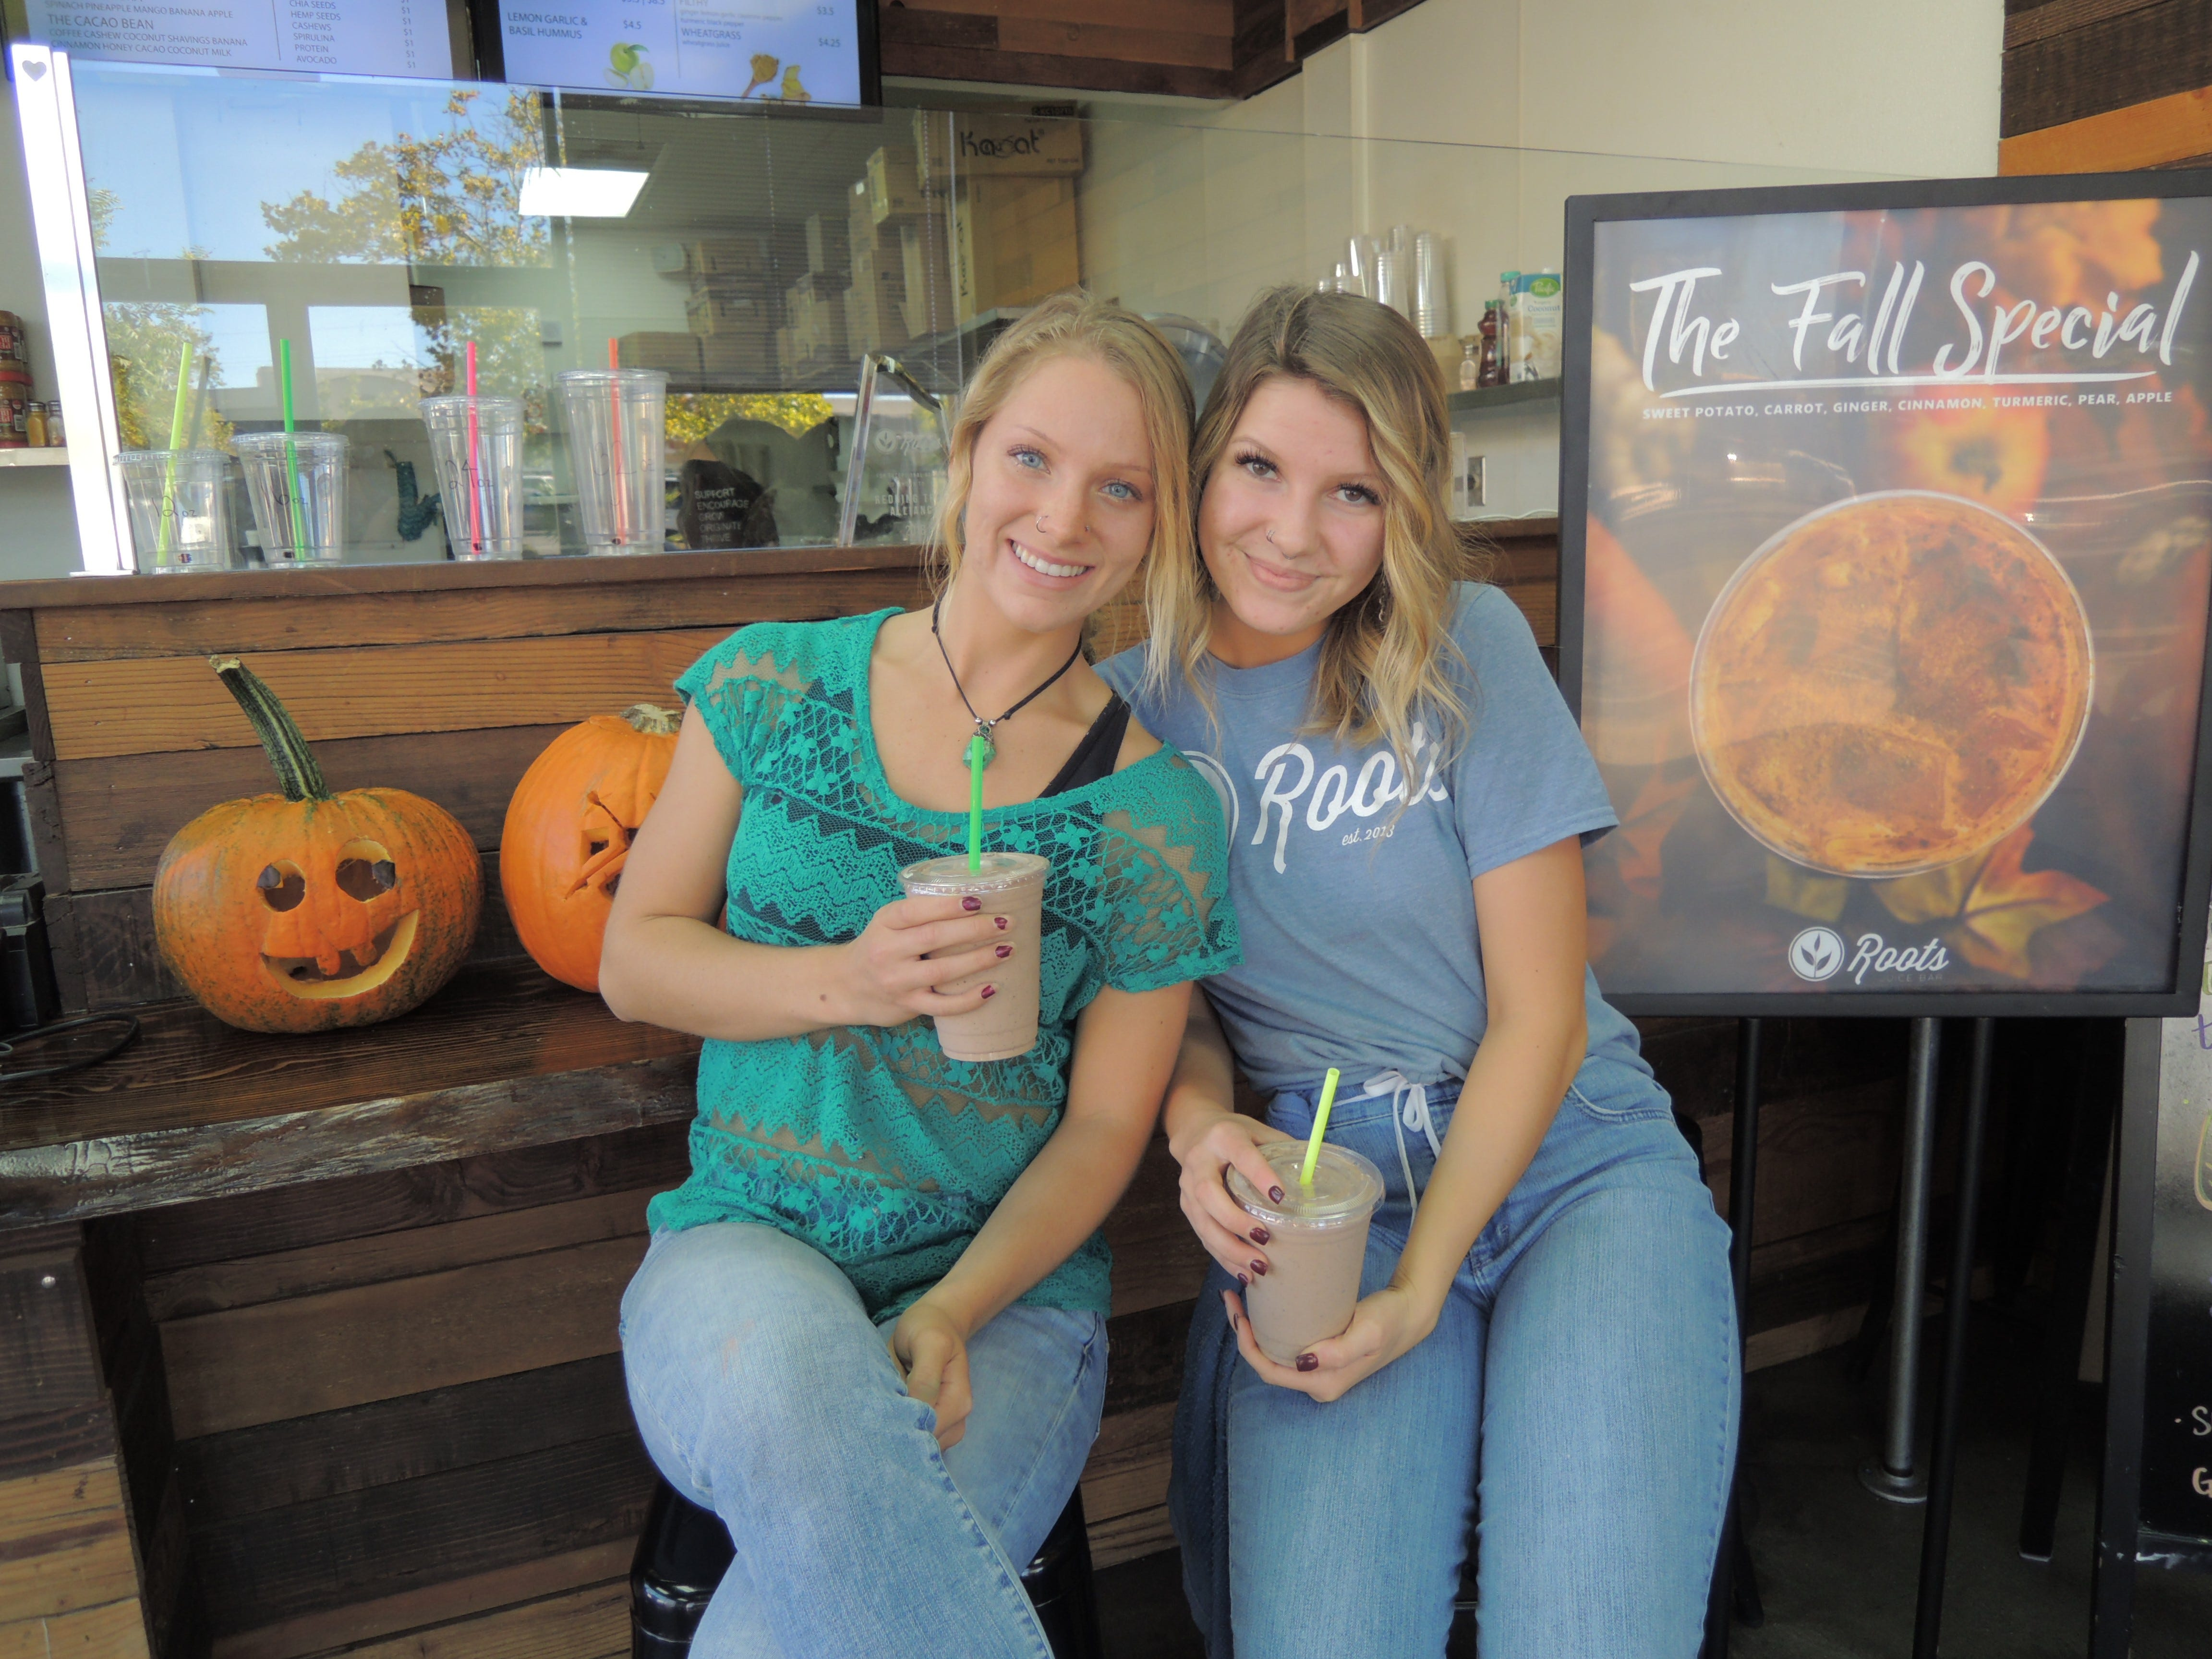 Rosalyn Garcia, left, and Mikayla Hutchinson work at Roots Juice Bar in east Redding.